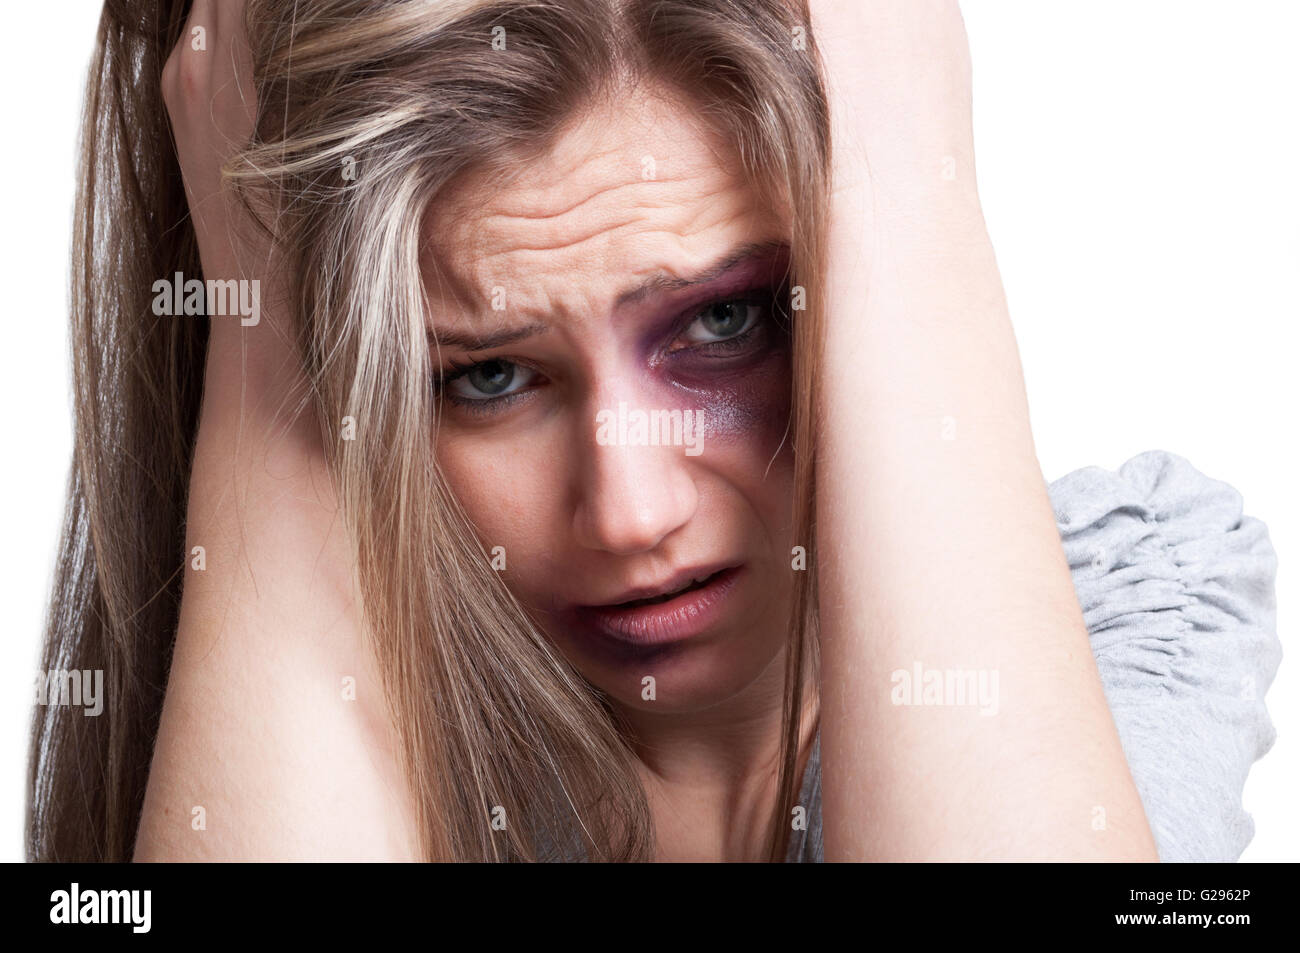 Hurt, injured, bruised and sad woman suffering. Domestic violence concept on white background - Stock Image